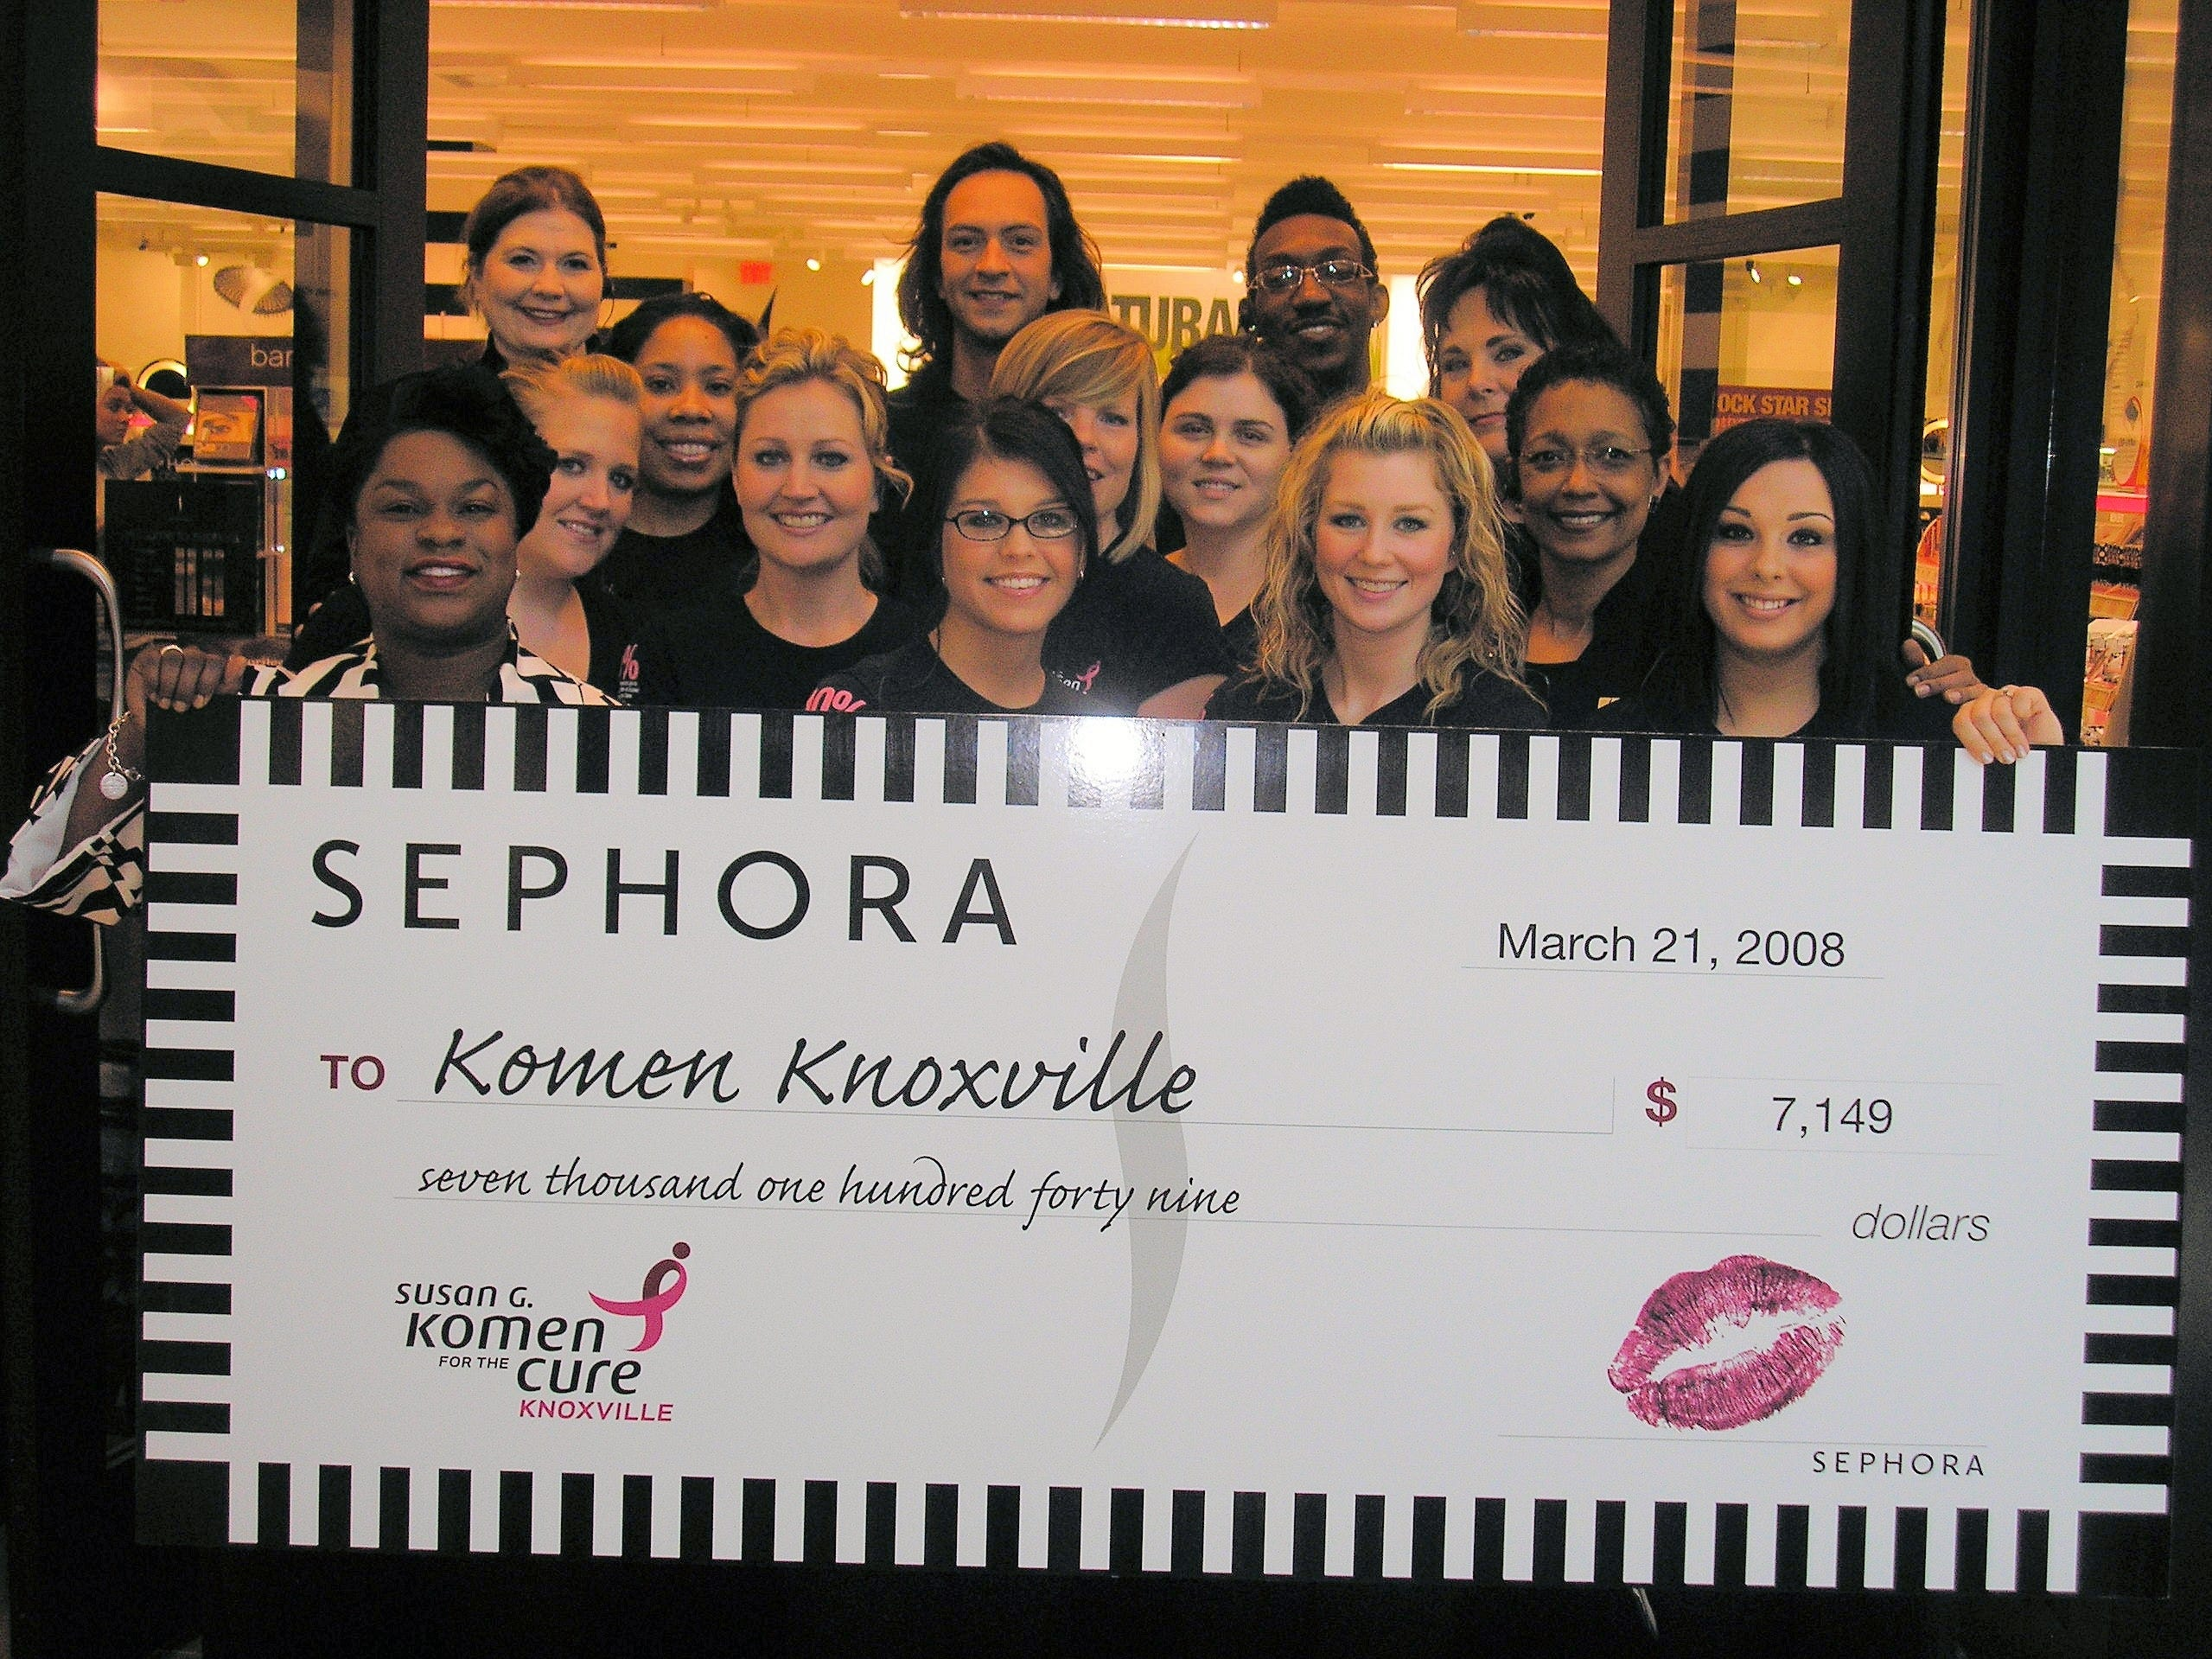 Cecilia Whittington of the Knoxville Affiliate of Susan G. Komen for the Cure, front row, far left, accepts a check from Sephora associates including Joy Wellman, store director of the West Town Mall location, top left. Beauty retailer Sephora recently donated $7,149 from its grand opening sales on Feb. 29 to the Knoxville Affiliate of Susan G. Komen for the Cure, which has invested more than $3 million dollars in local breast health and breast cancer awareness projects in Knoxville and 15 surrounding counties since 1997.